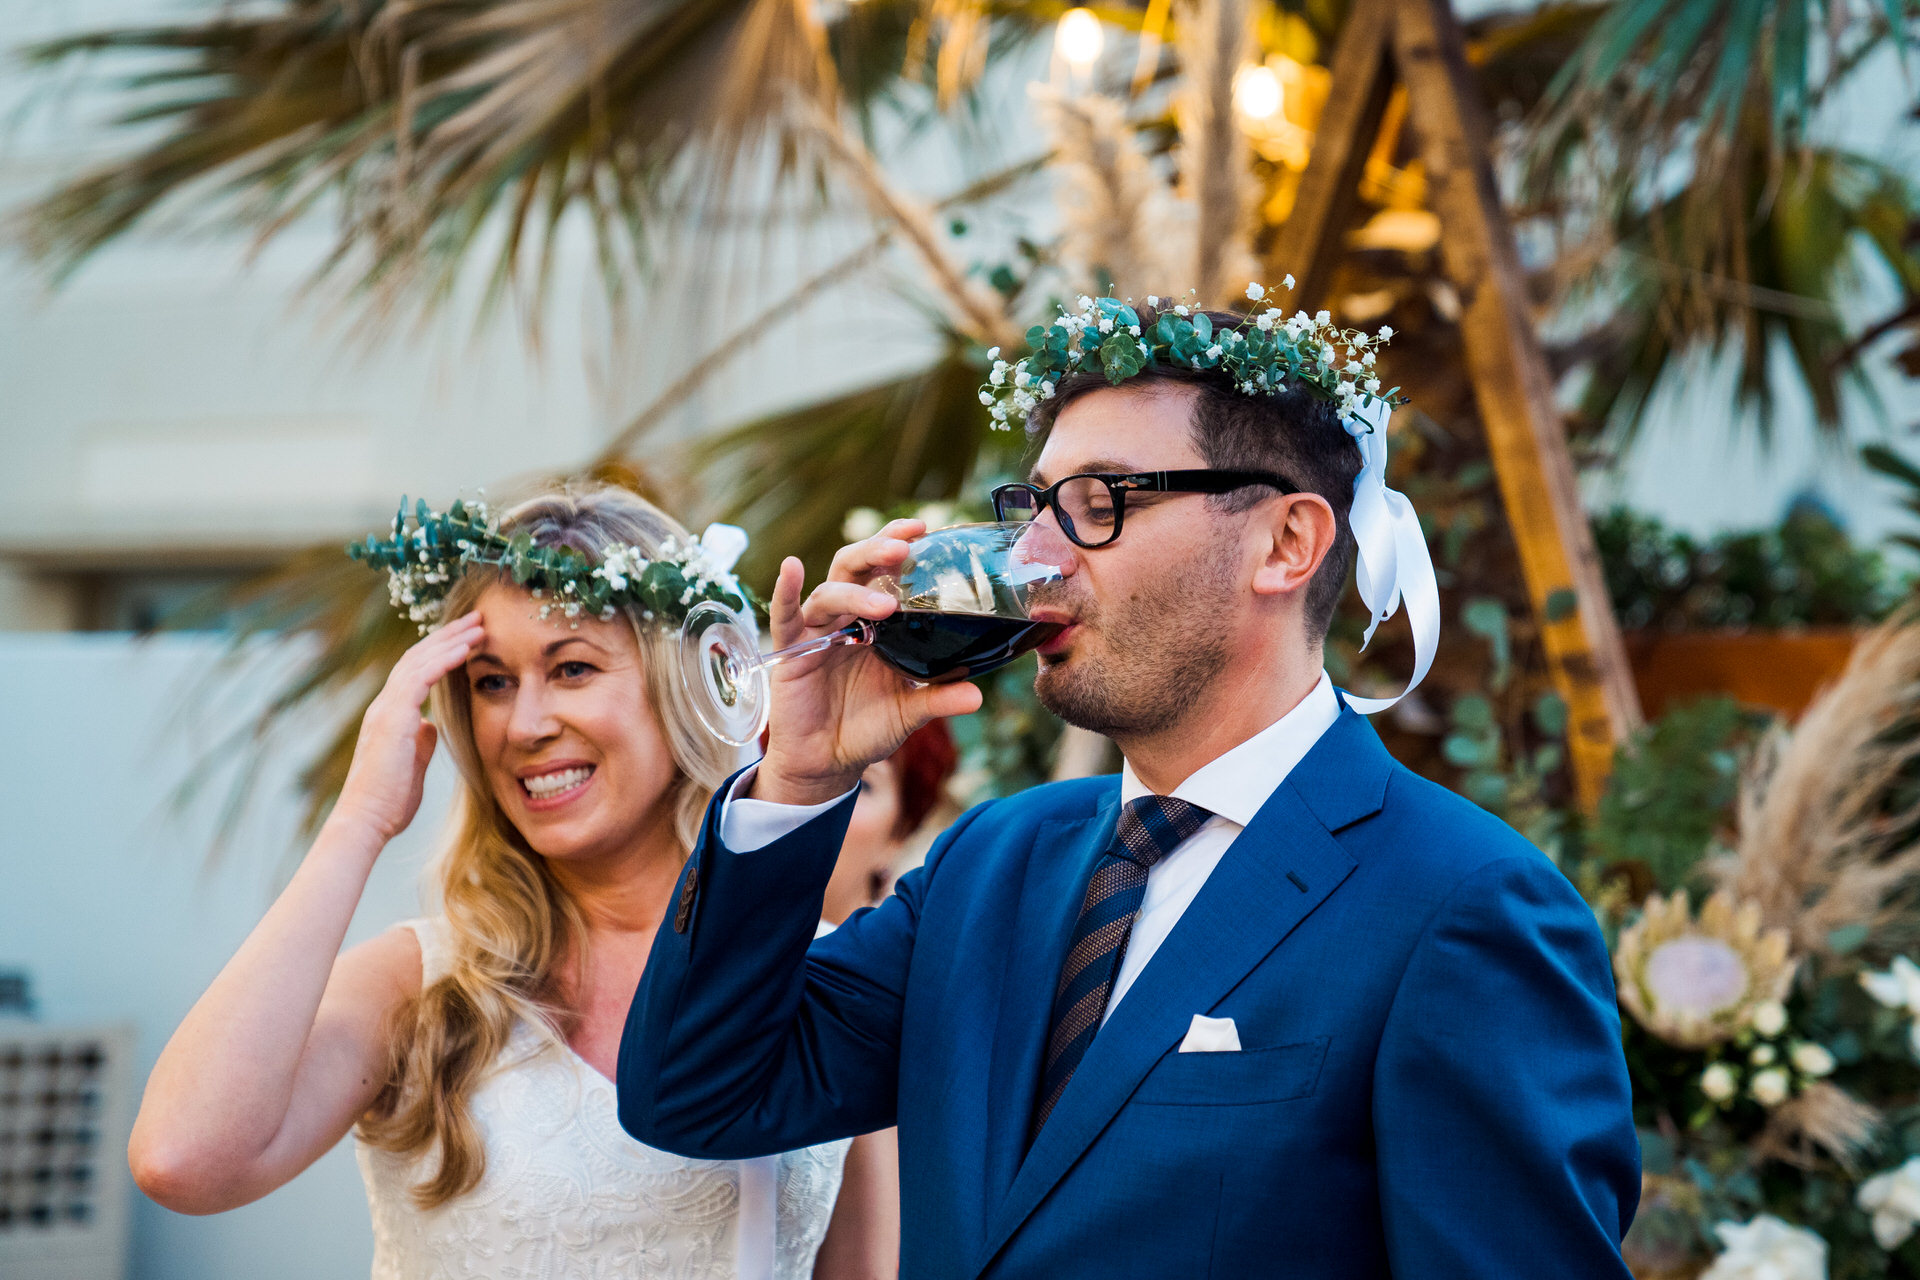 UAE Home Elopement Ceremony Photos | The 'common cup', where the couple take three sips of wine representing their union